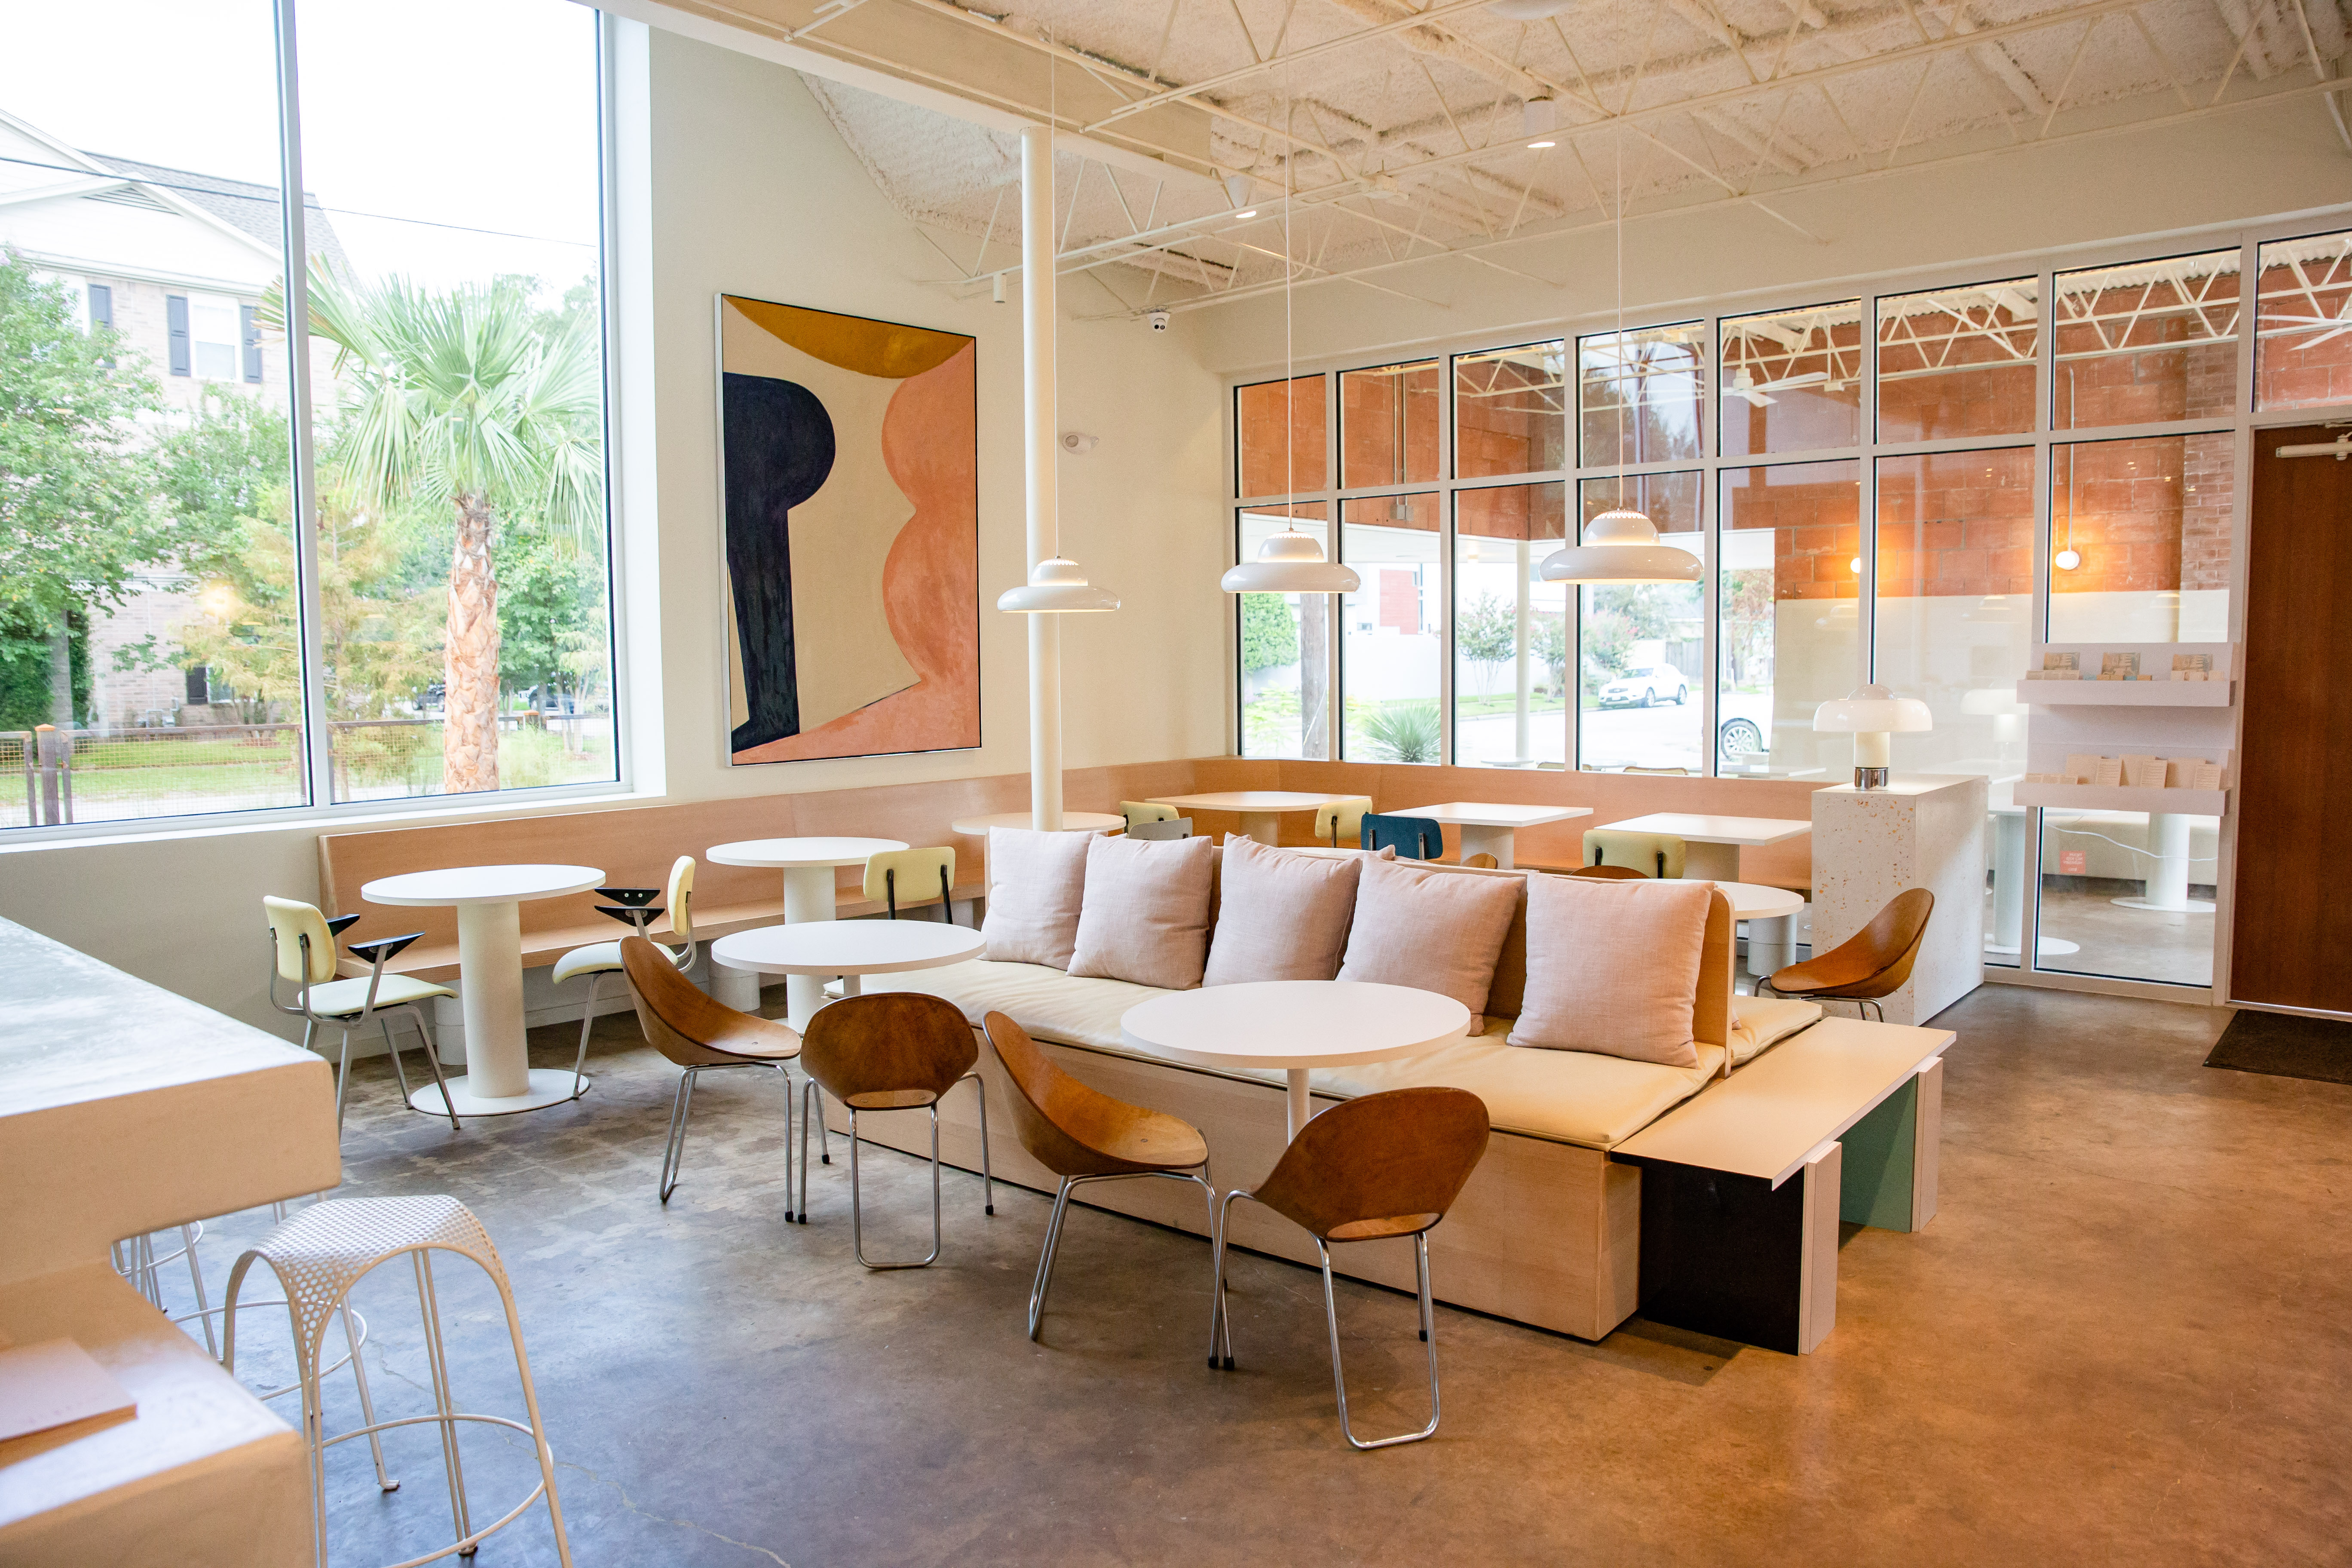 How An Old Montrose Dry Cleaners Was Transformed Into One of Houston's Most Stunning Restaurants